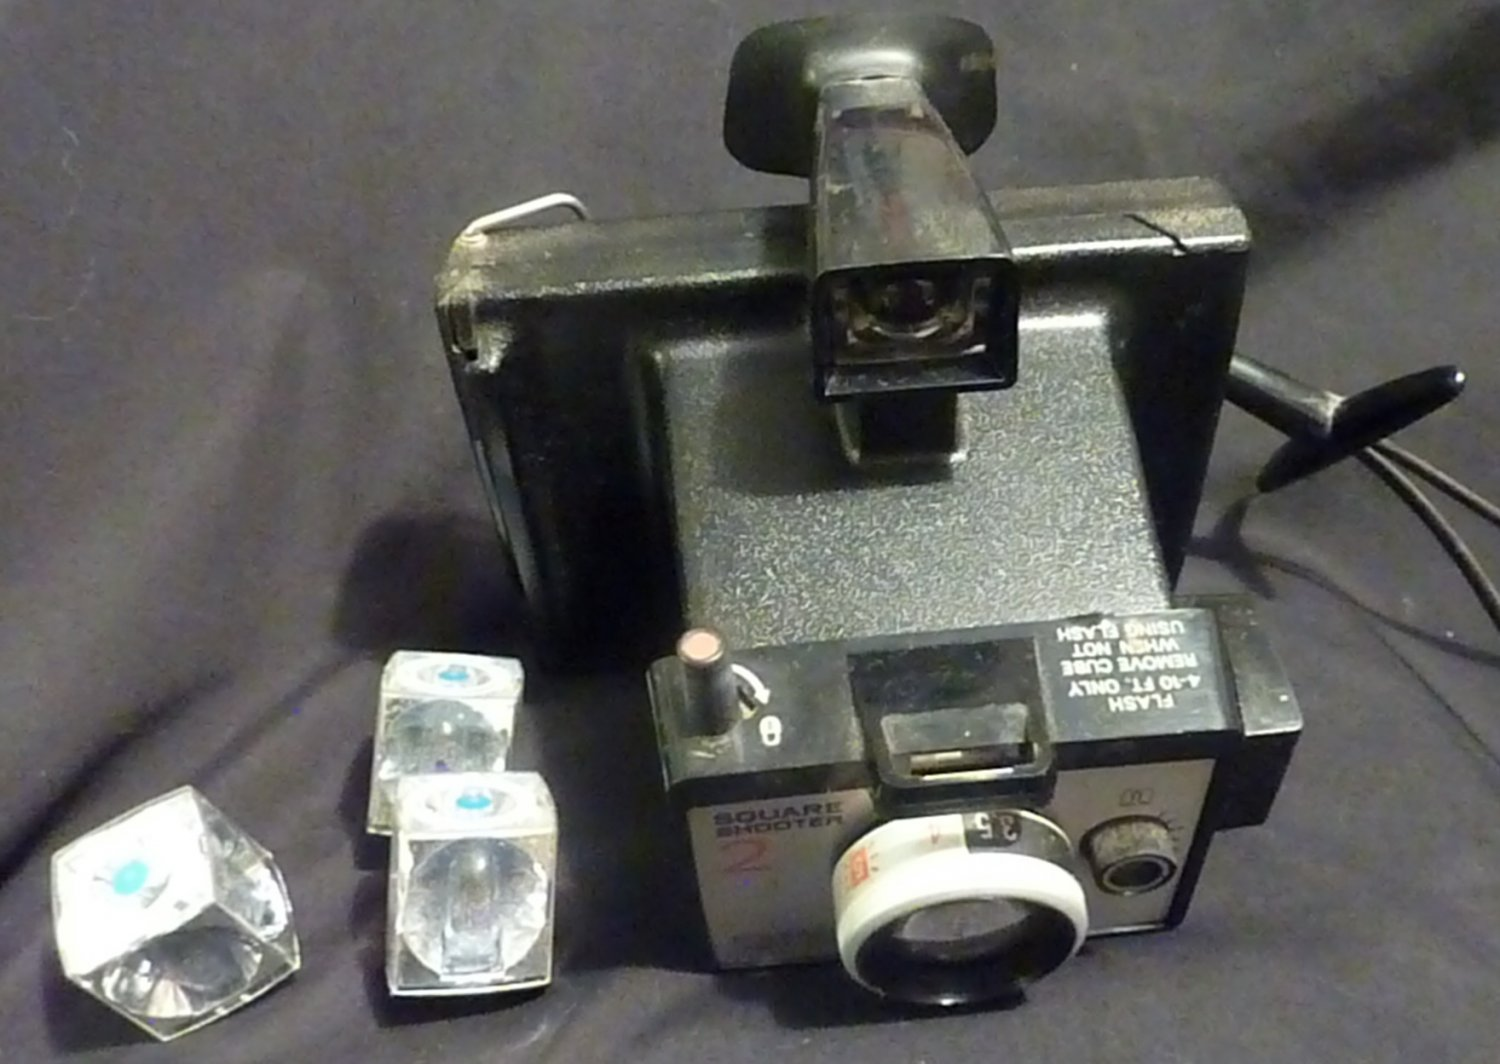 Polaroid Square Shooter 2 (Vintage) with 3 Flash Cubes